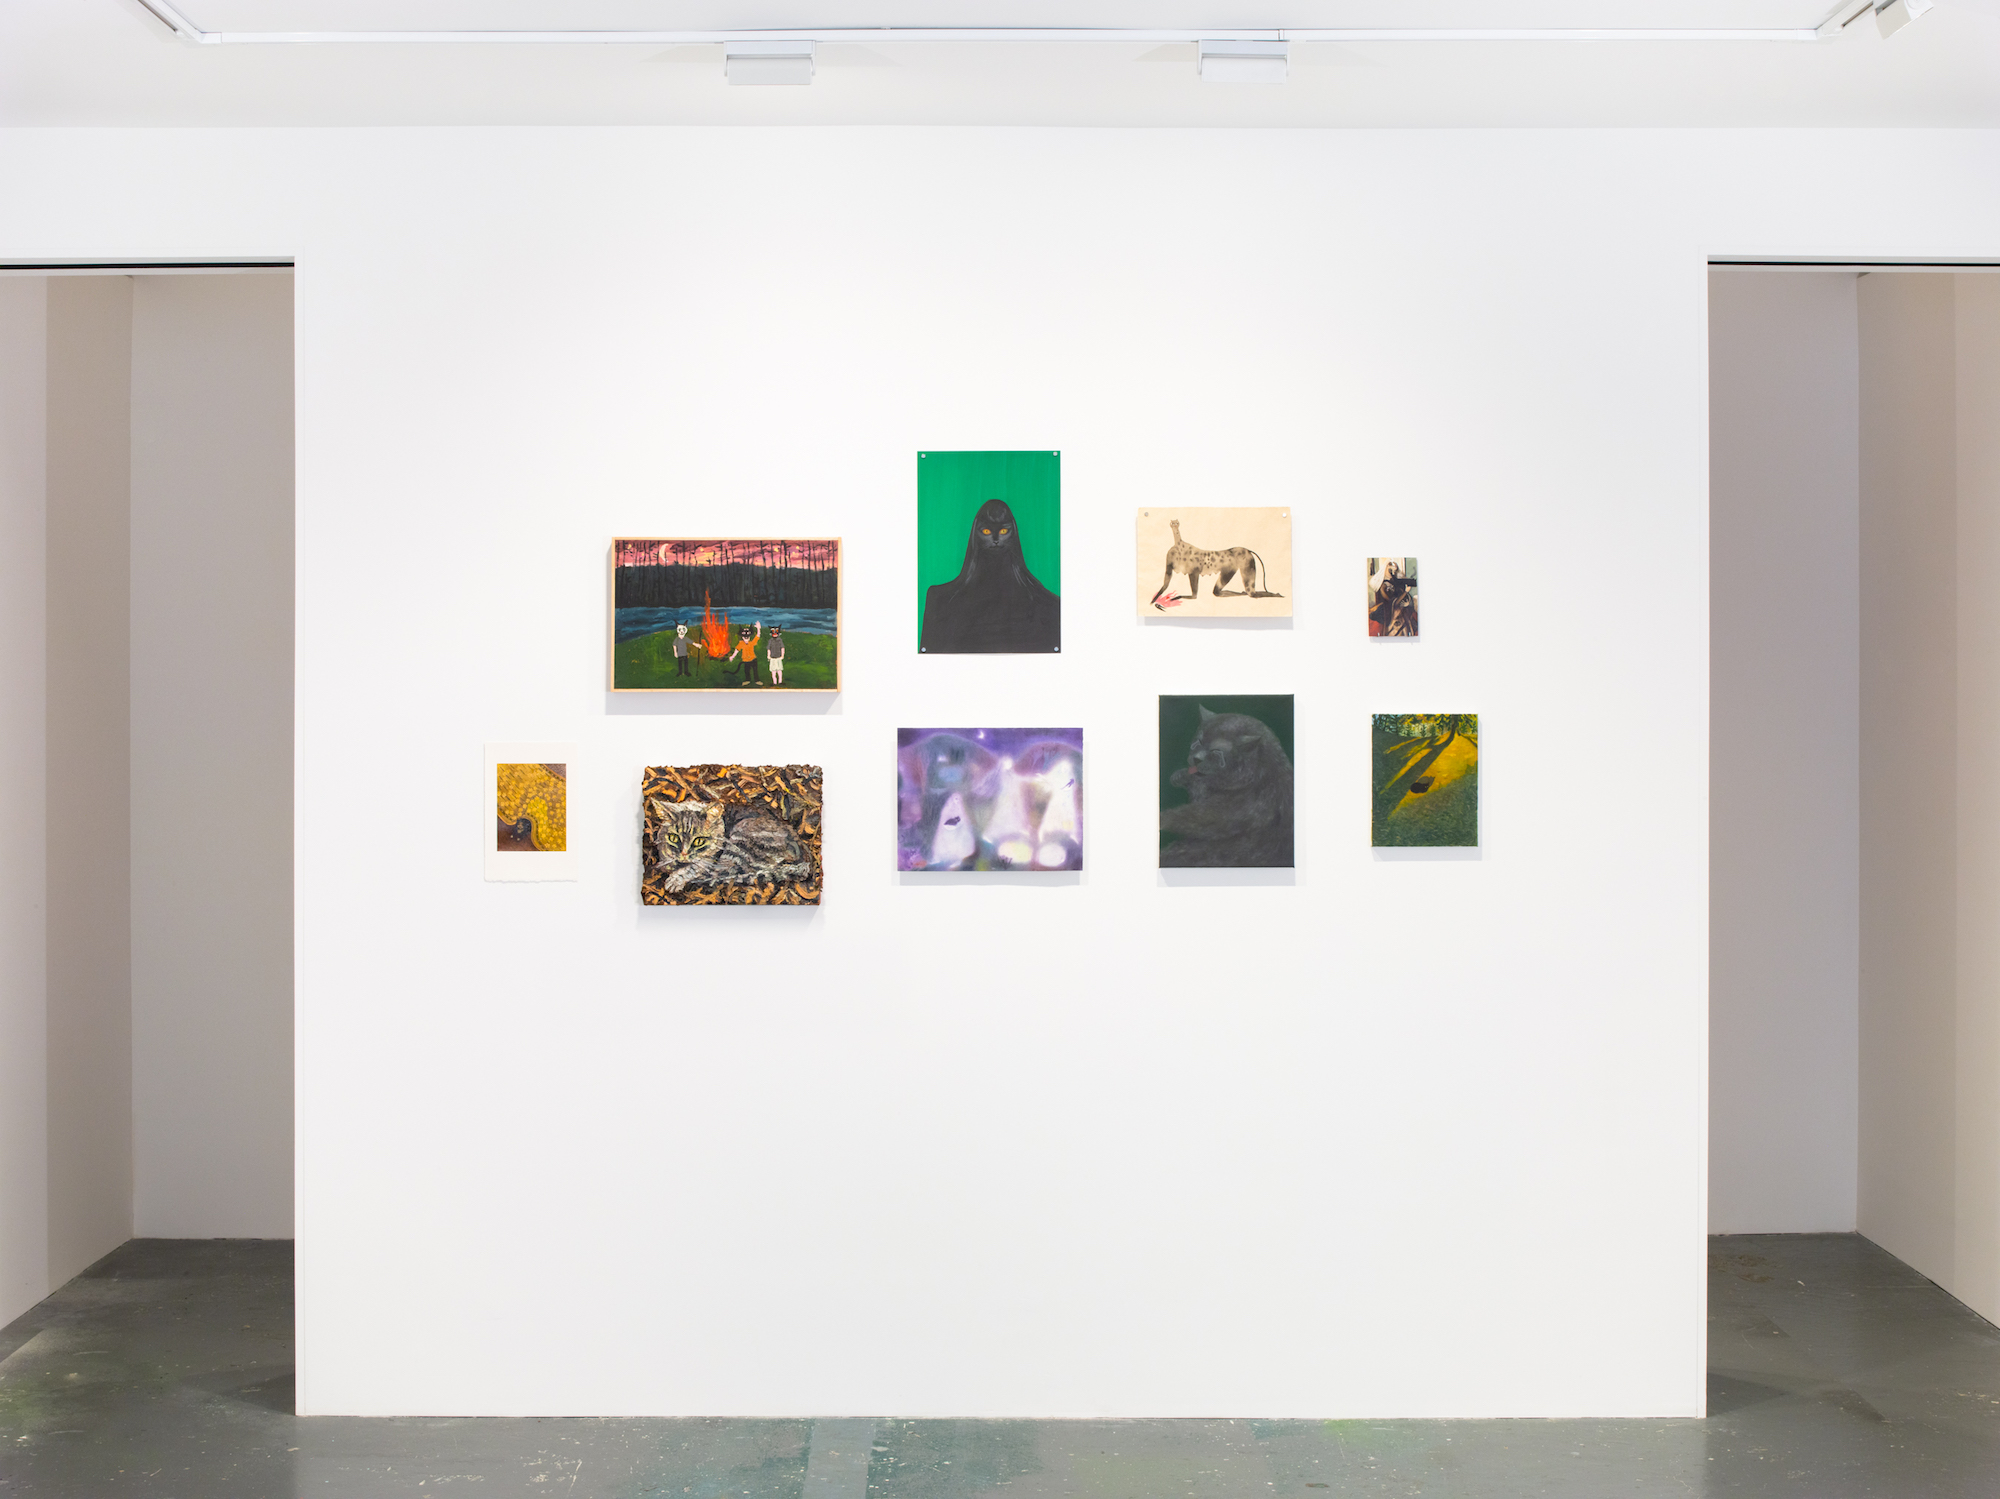 installation view of nine lives show at fortnight institute in nyc - white wall with various paintings of animals